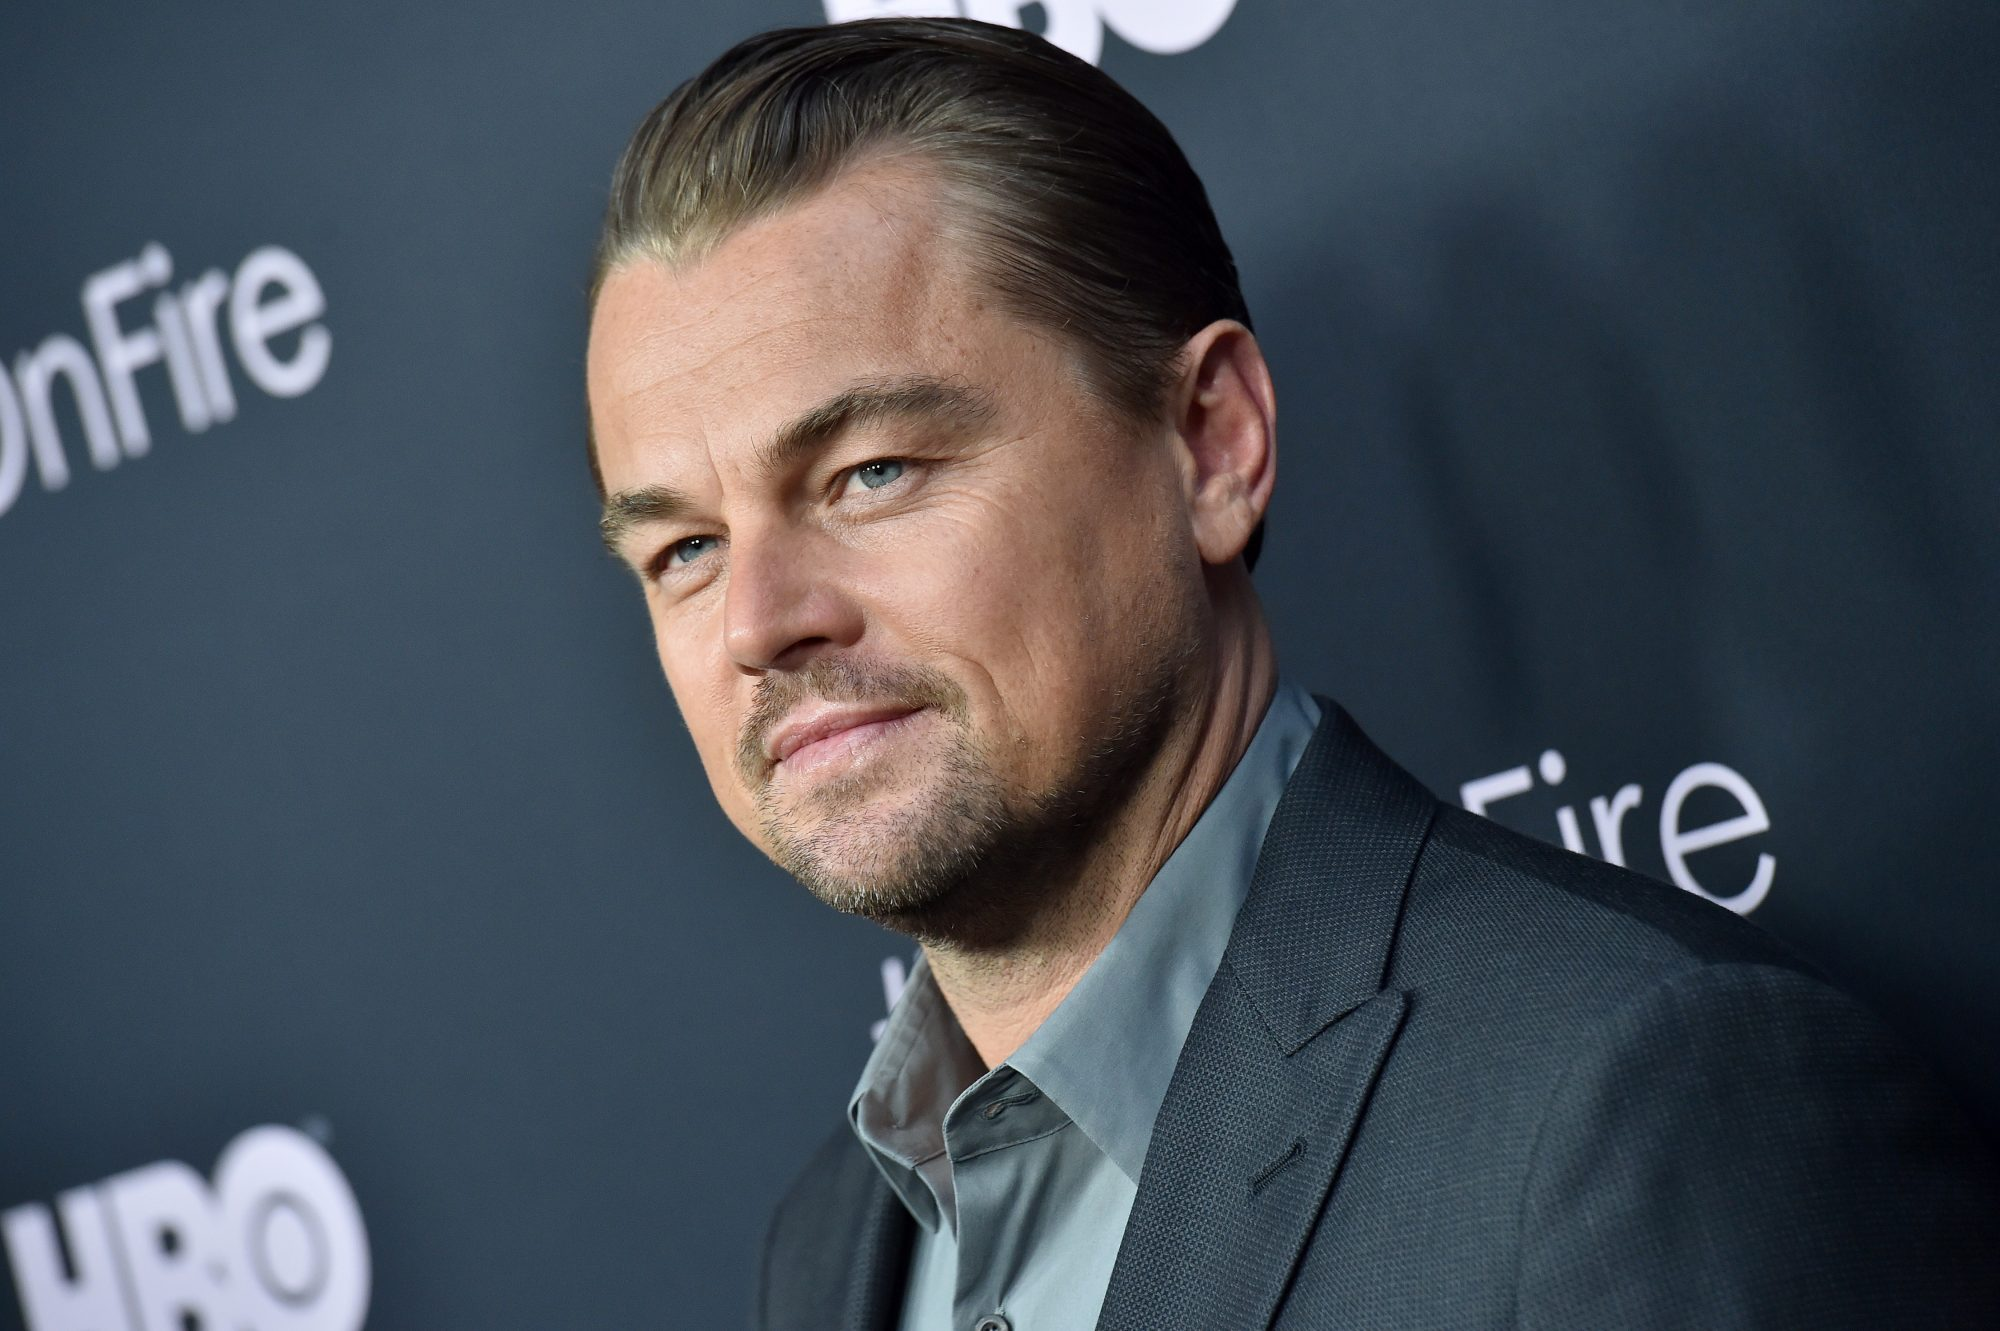 We Need to Talk About Leonardo DiCaprio's Dad's Hair